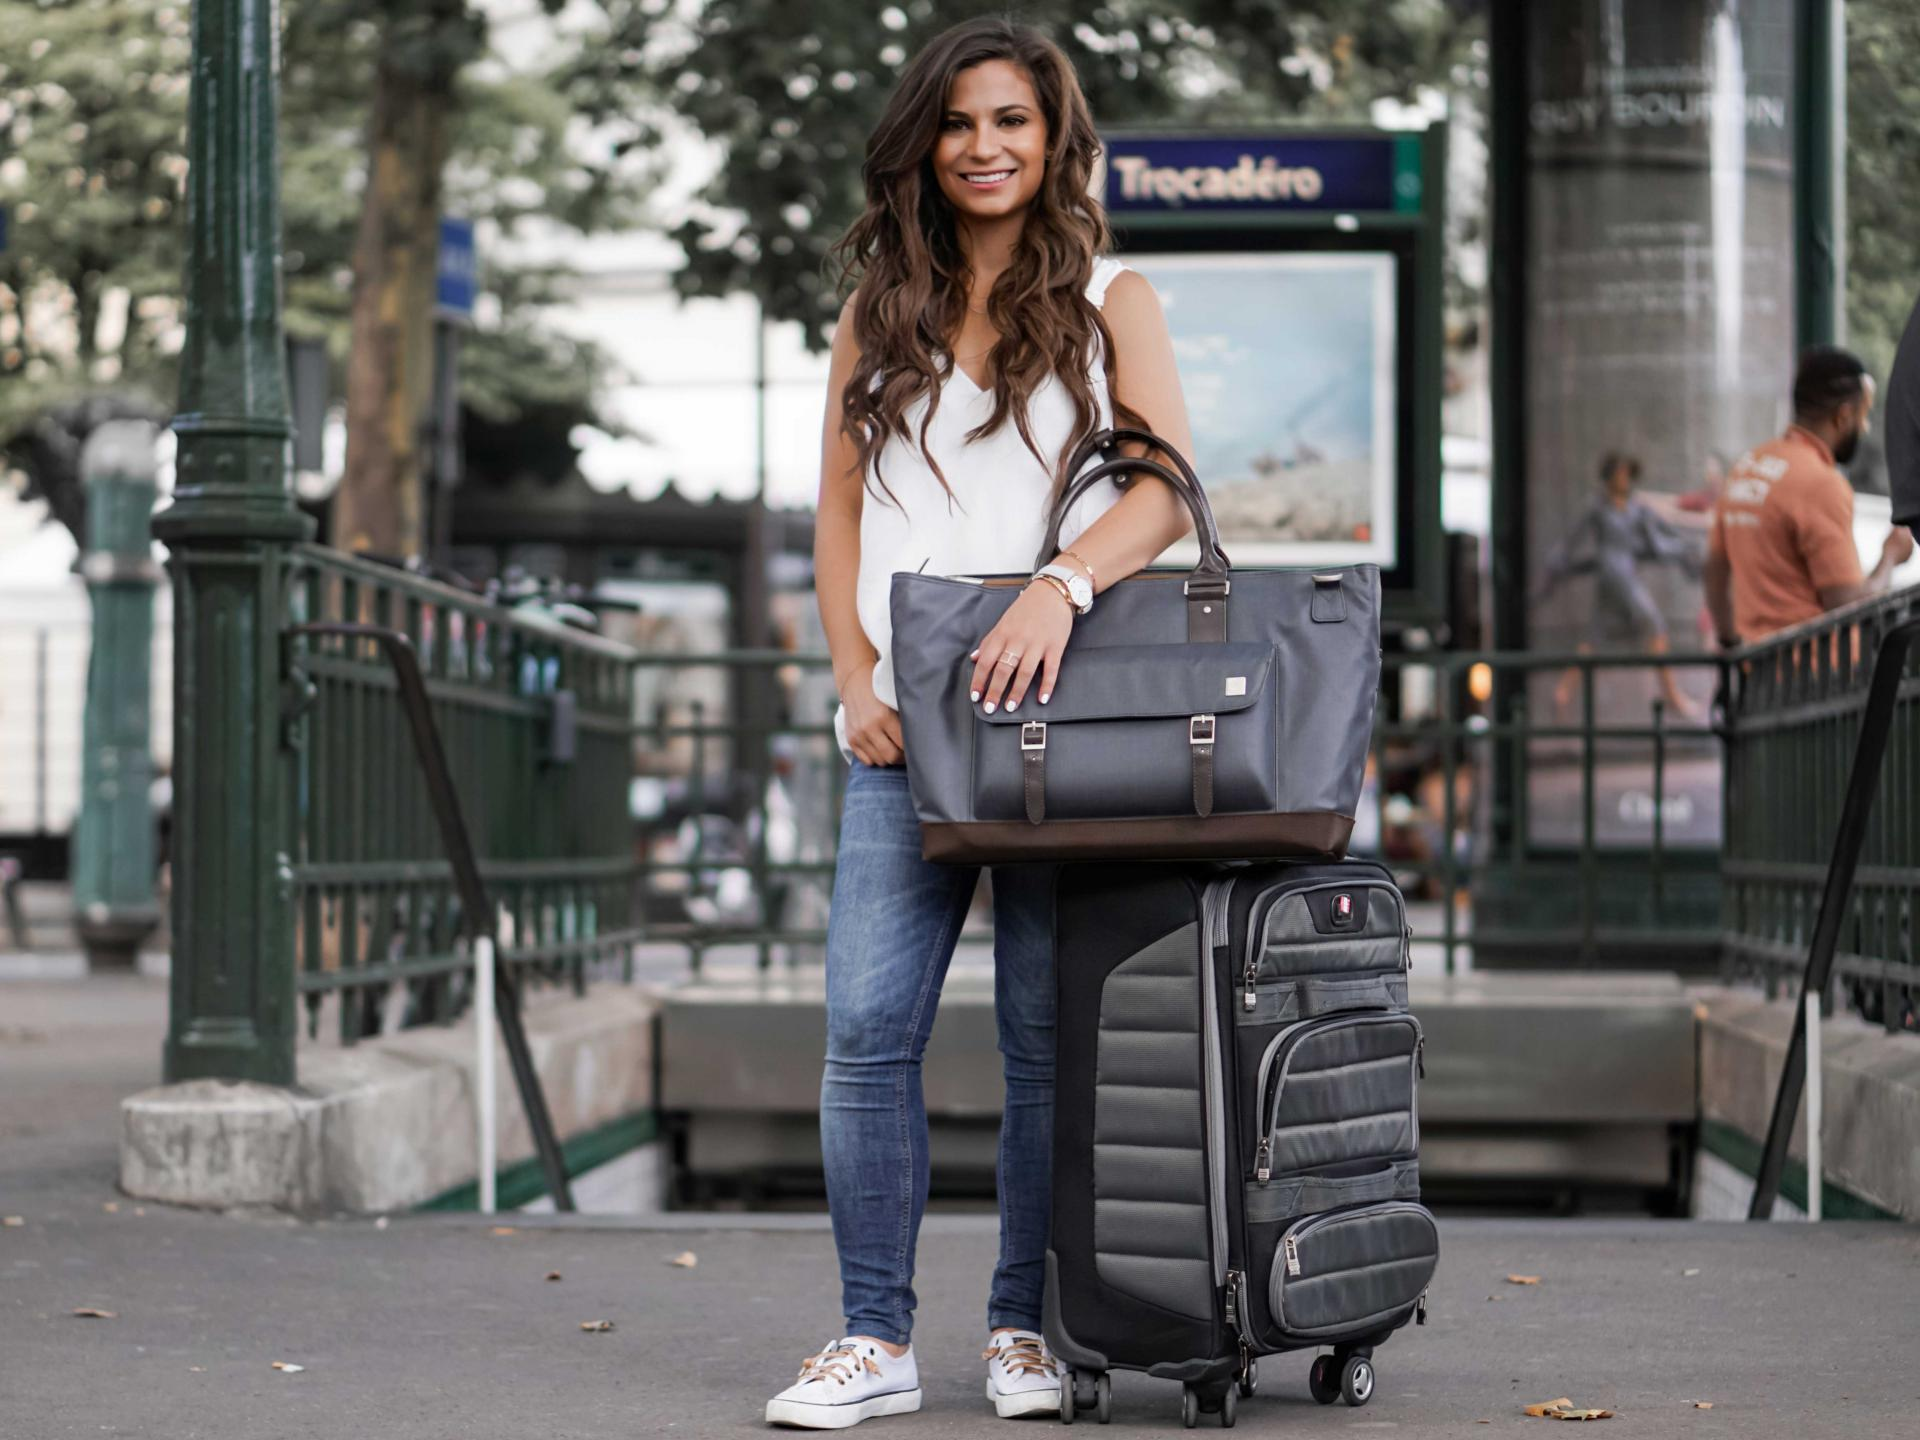 10 travel hacks that will change your life